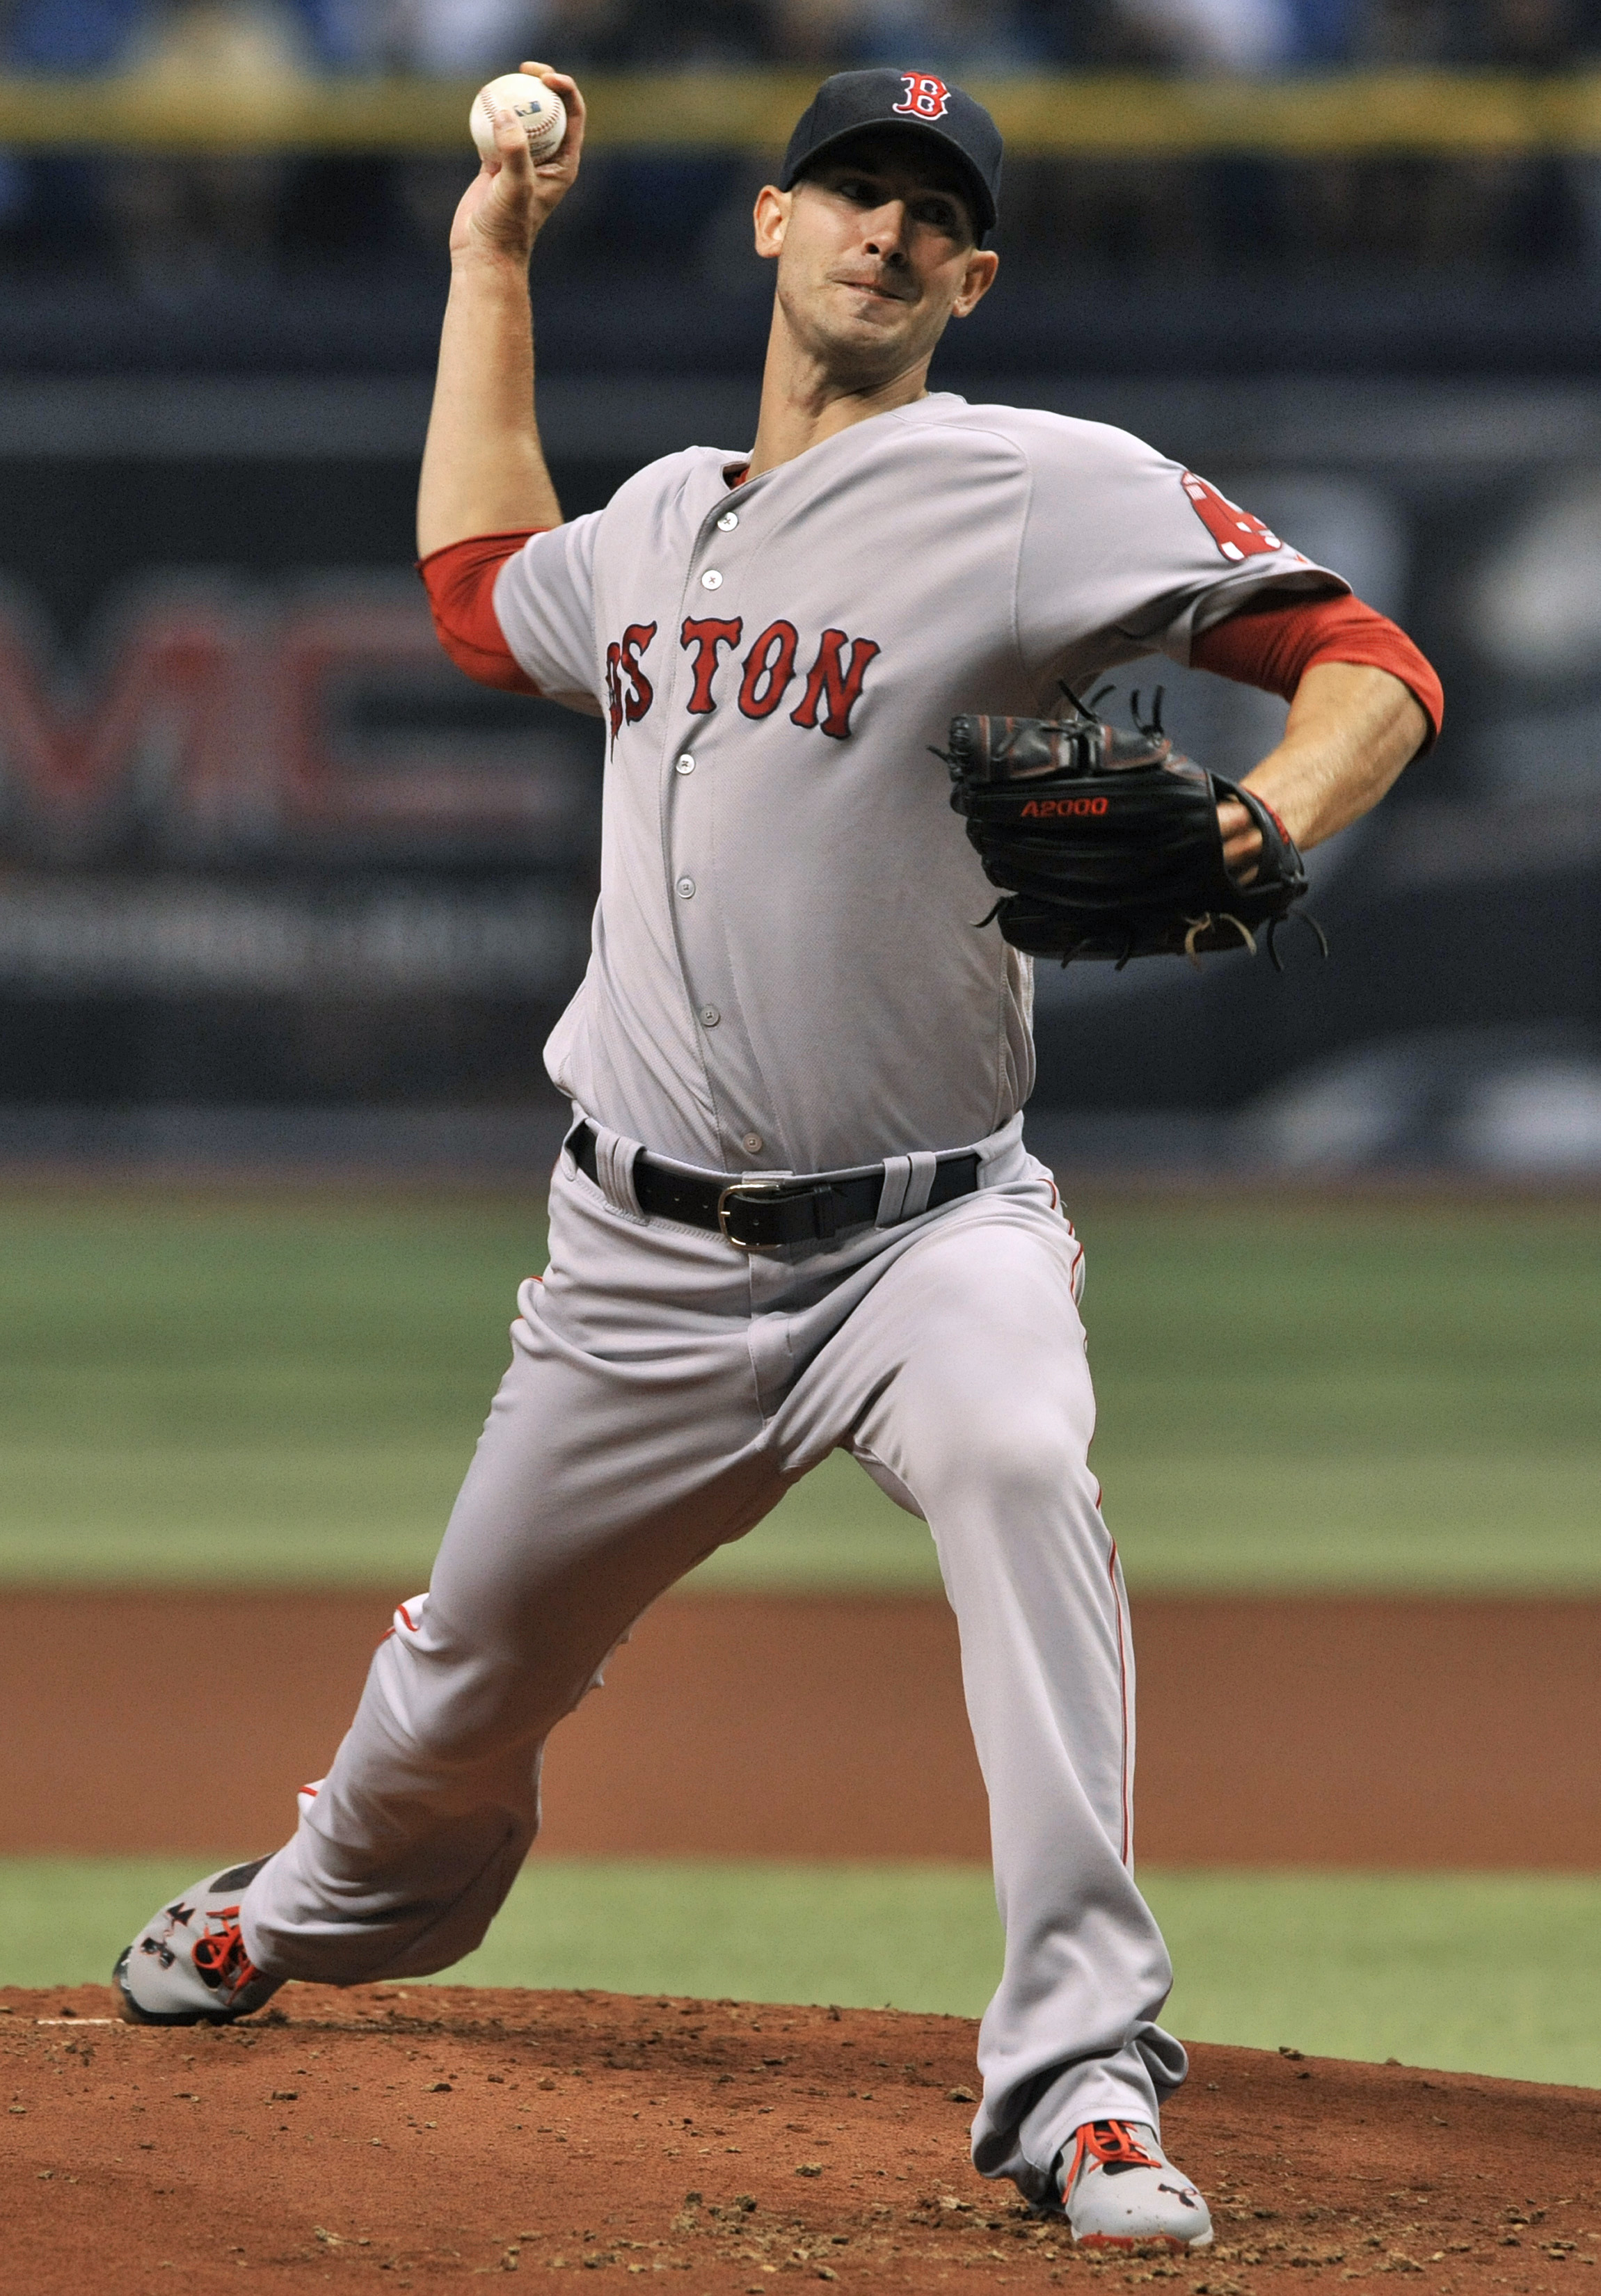 Boston Red Sox starter Rick Porcello pitches against the Tampa Bay Rays during the first inning of a baseball game Saturday, Sept. 24, 2016, in St. Petersburg, Fla. (AP Photo/Steve Nesius)